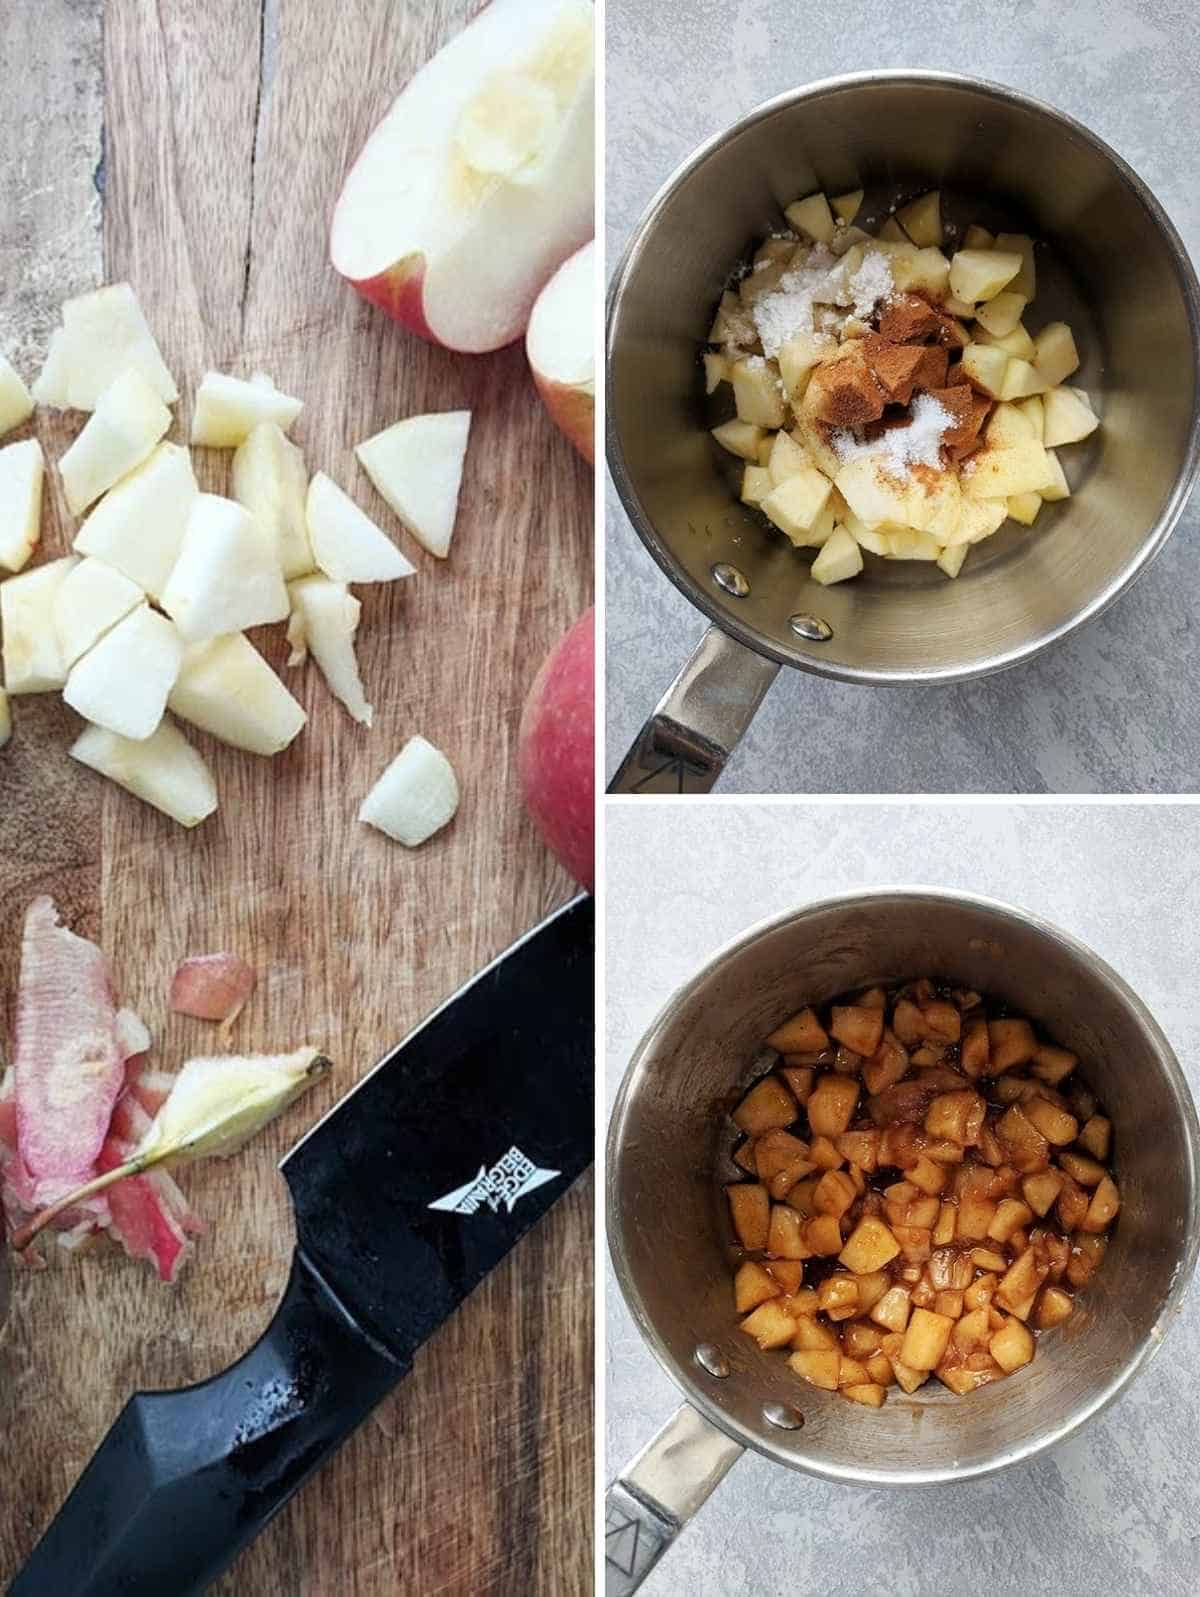 3 photos of making cinnamon apples. First shows chopped apples, 2nd shows chopped apple and cinnamon in a saucepan and last shows after it has been cooked.